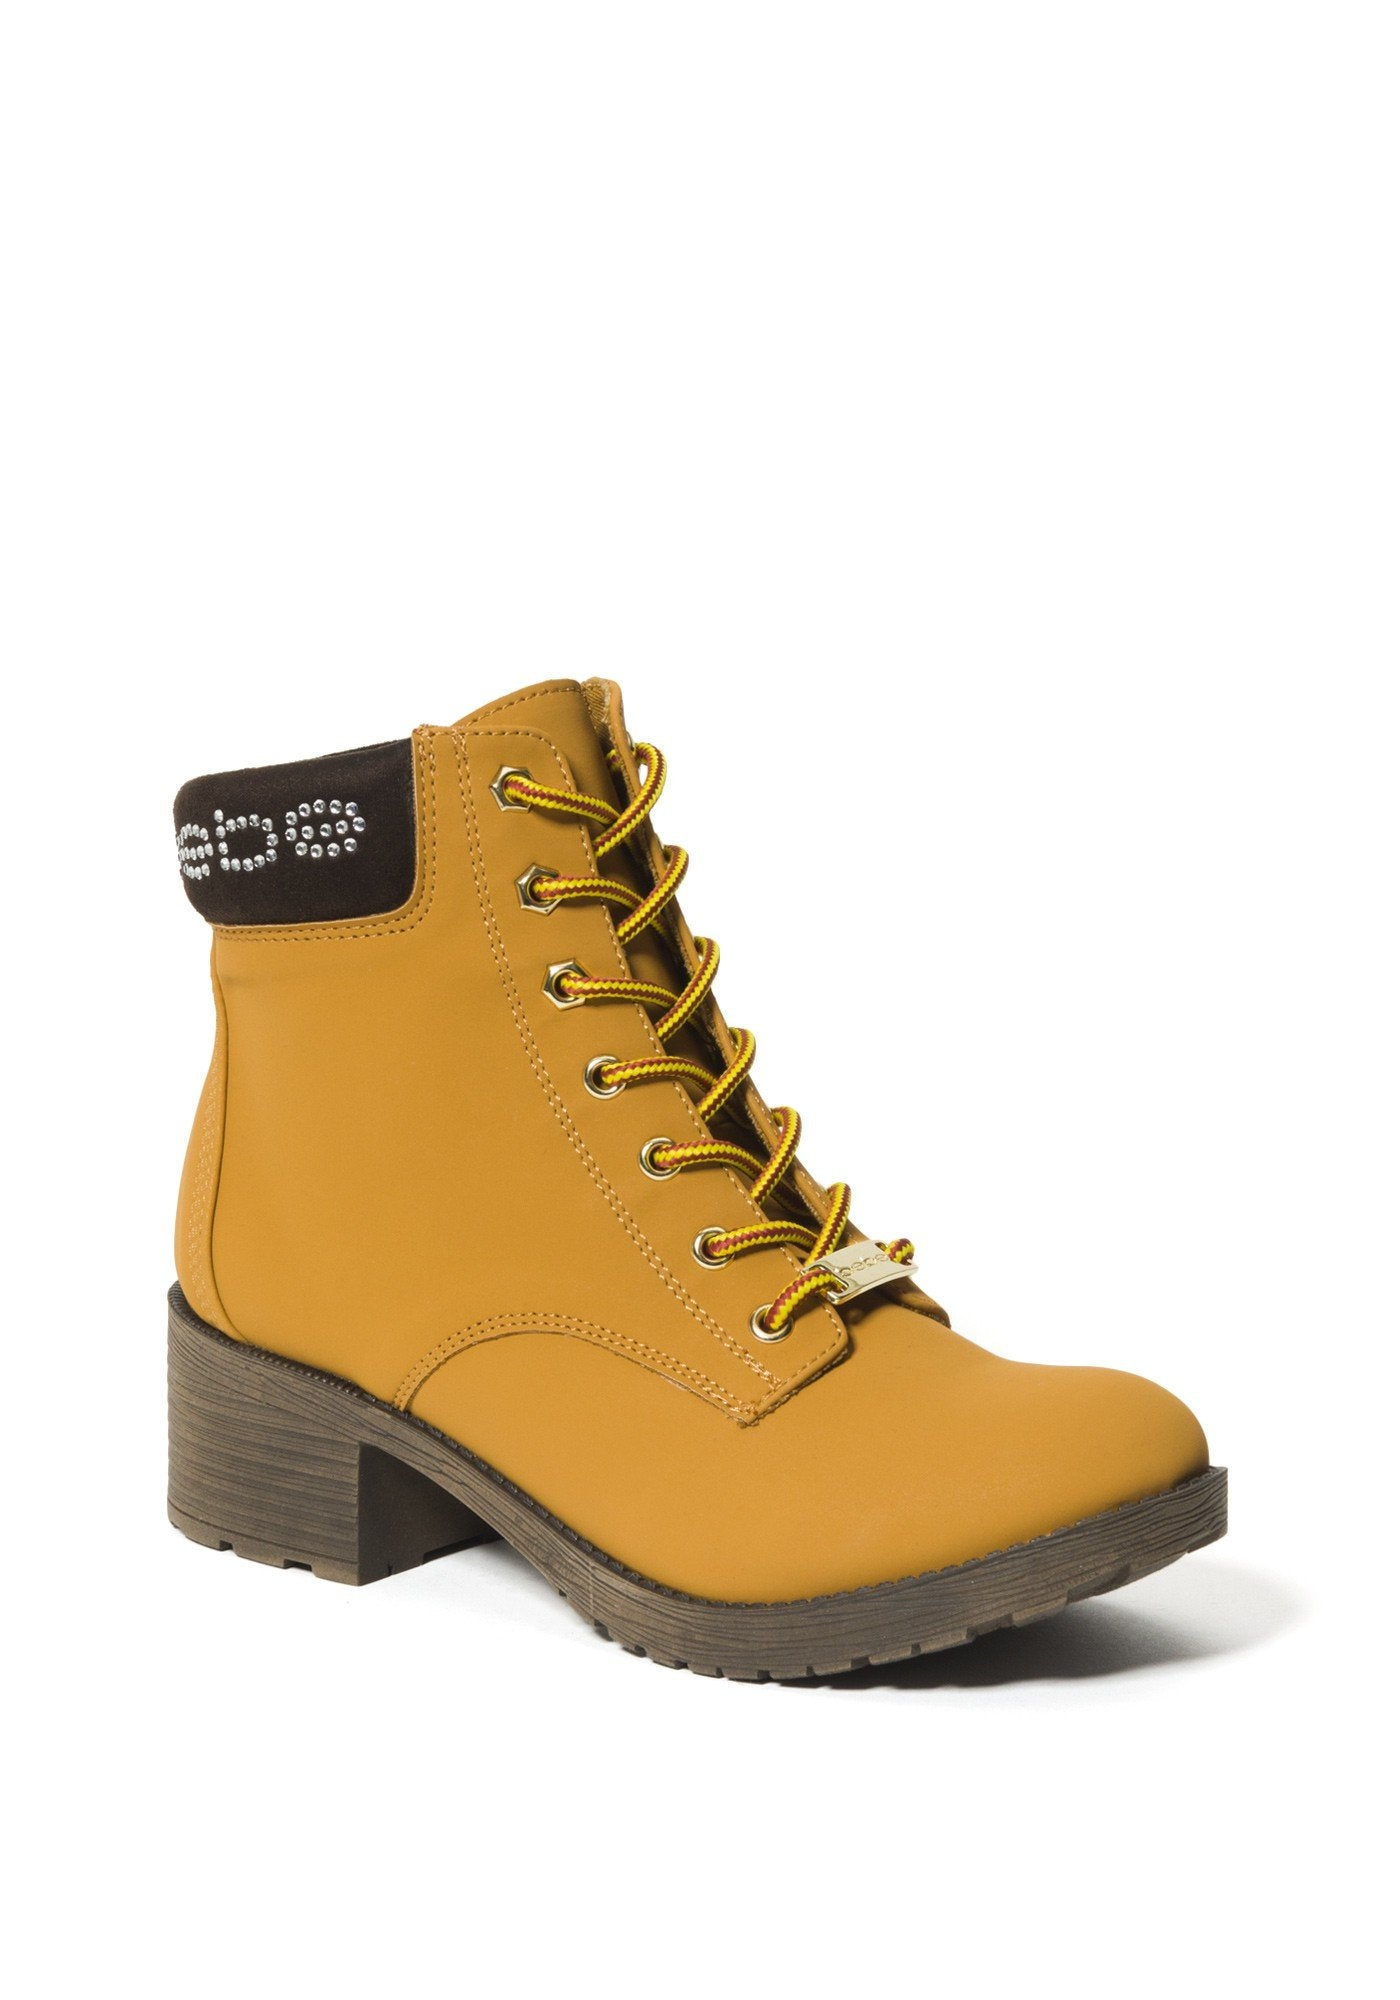 Bebe Women's Shaylie Logo Ankle Boots, Size 6 in Wheat Synthetic